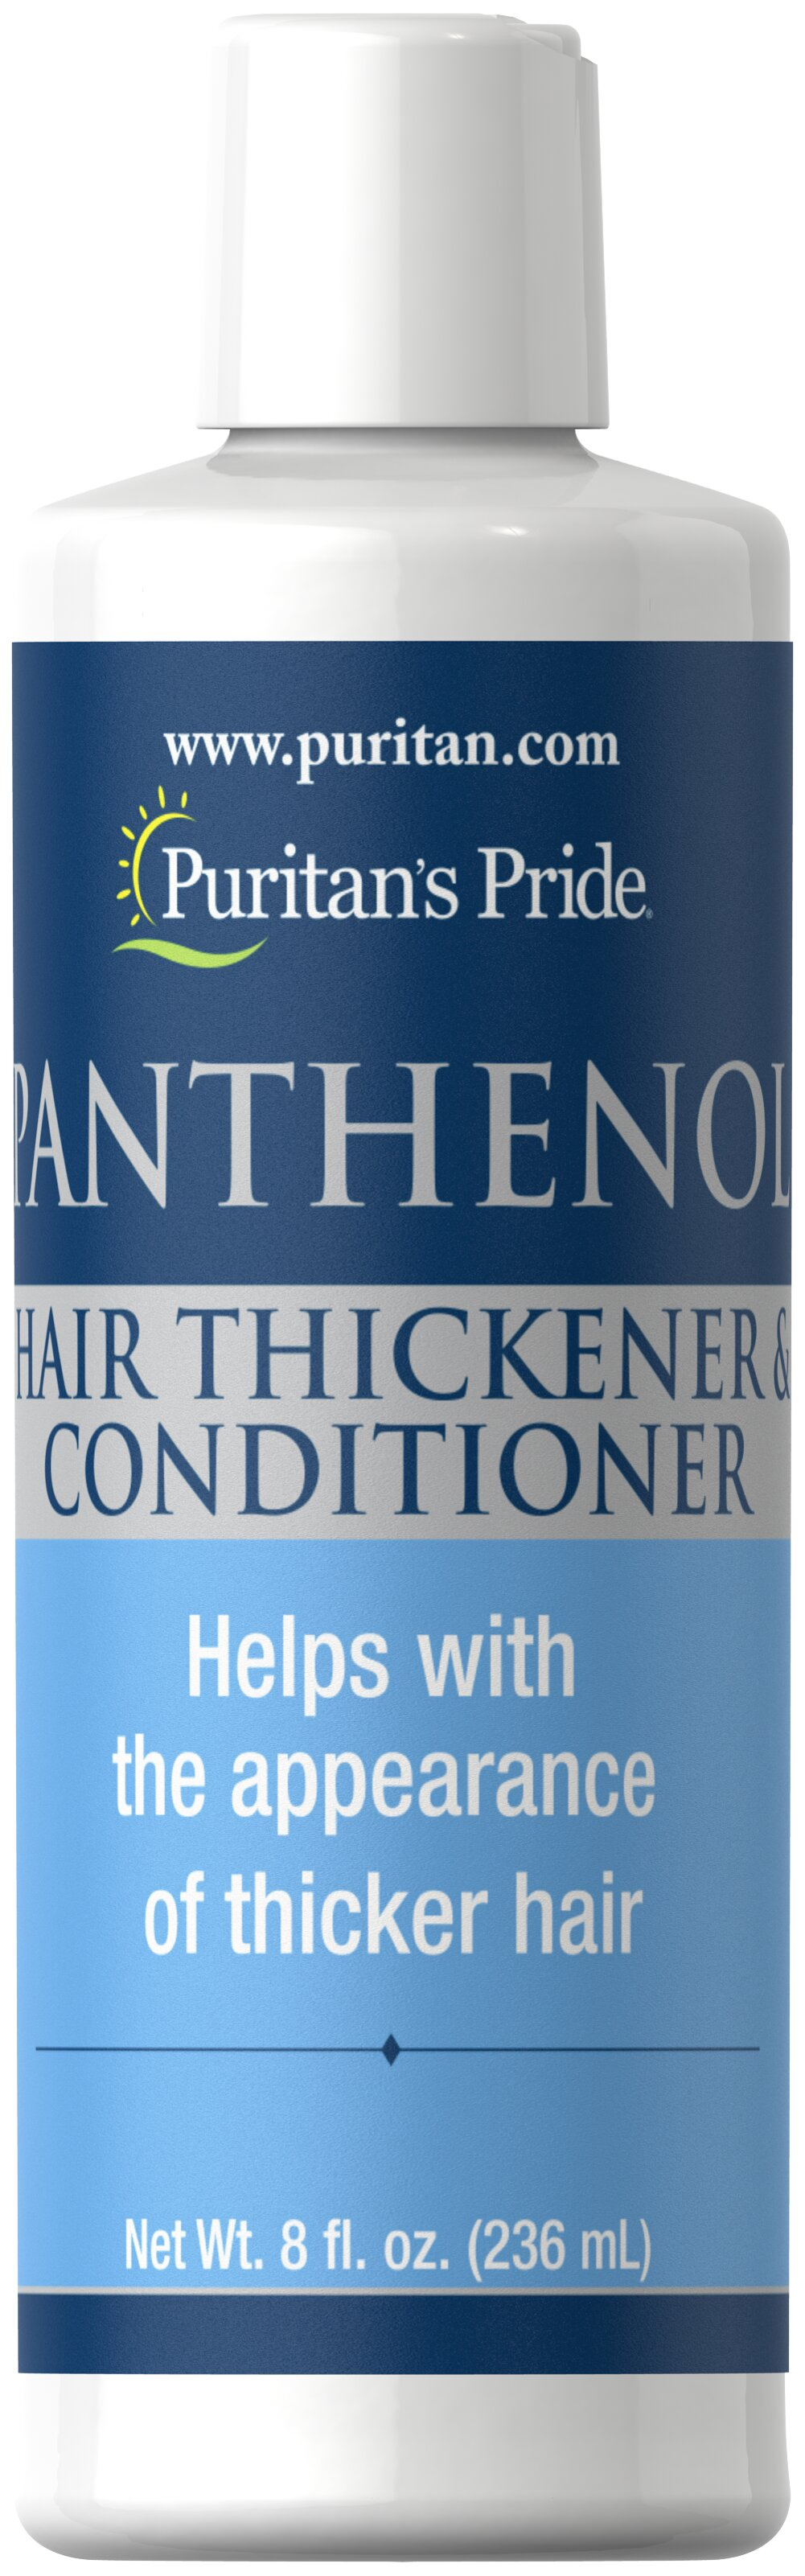 Panthenol Hair Thickener & Conditioner <p>Add New Body to Lifeless Hair</p><p>Pamper your hair with Puritan's Pride Hair Thickener & Conditioner. After continuous use, your hair will have more body, feel stronger, and look healthier. Panthenol revitalizes your hair as it penetrates each hair shaft, and can make a dramatic difference in the look and feel of your hair.</p> 8 fl oz Conditioner